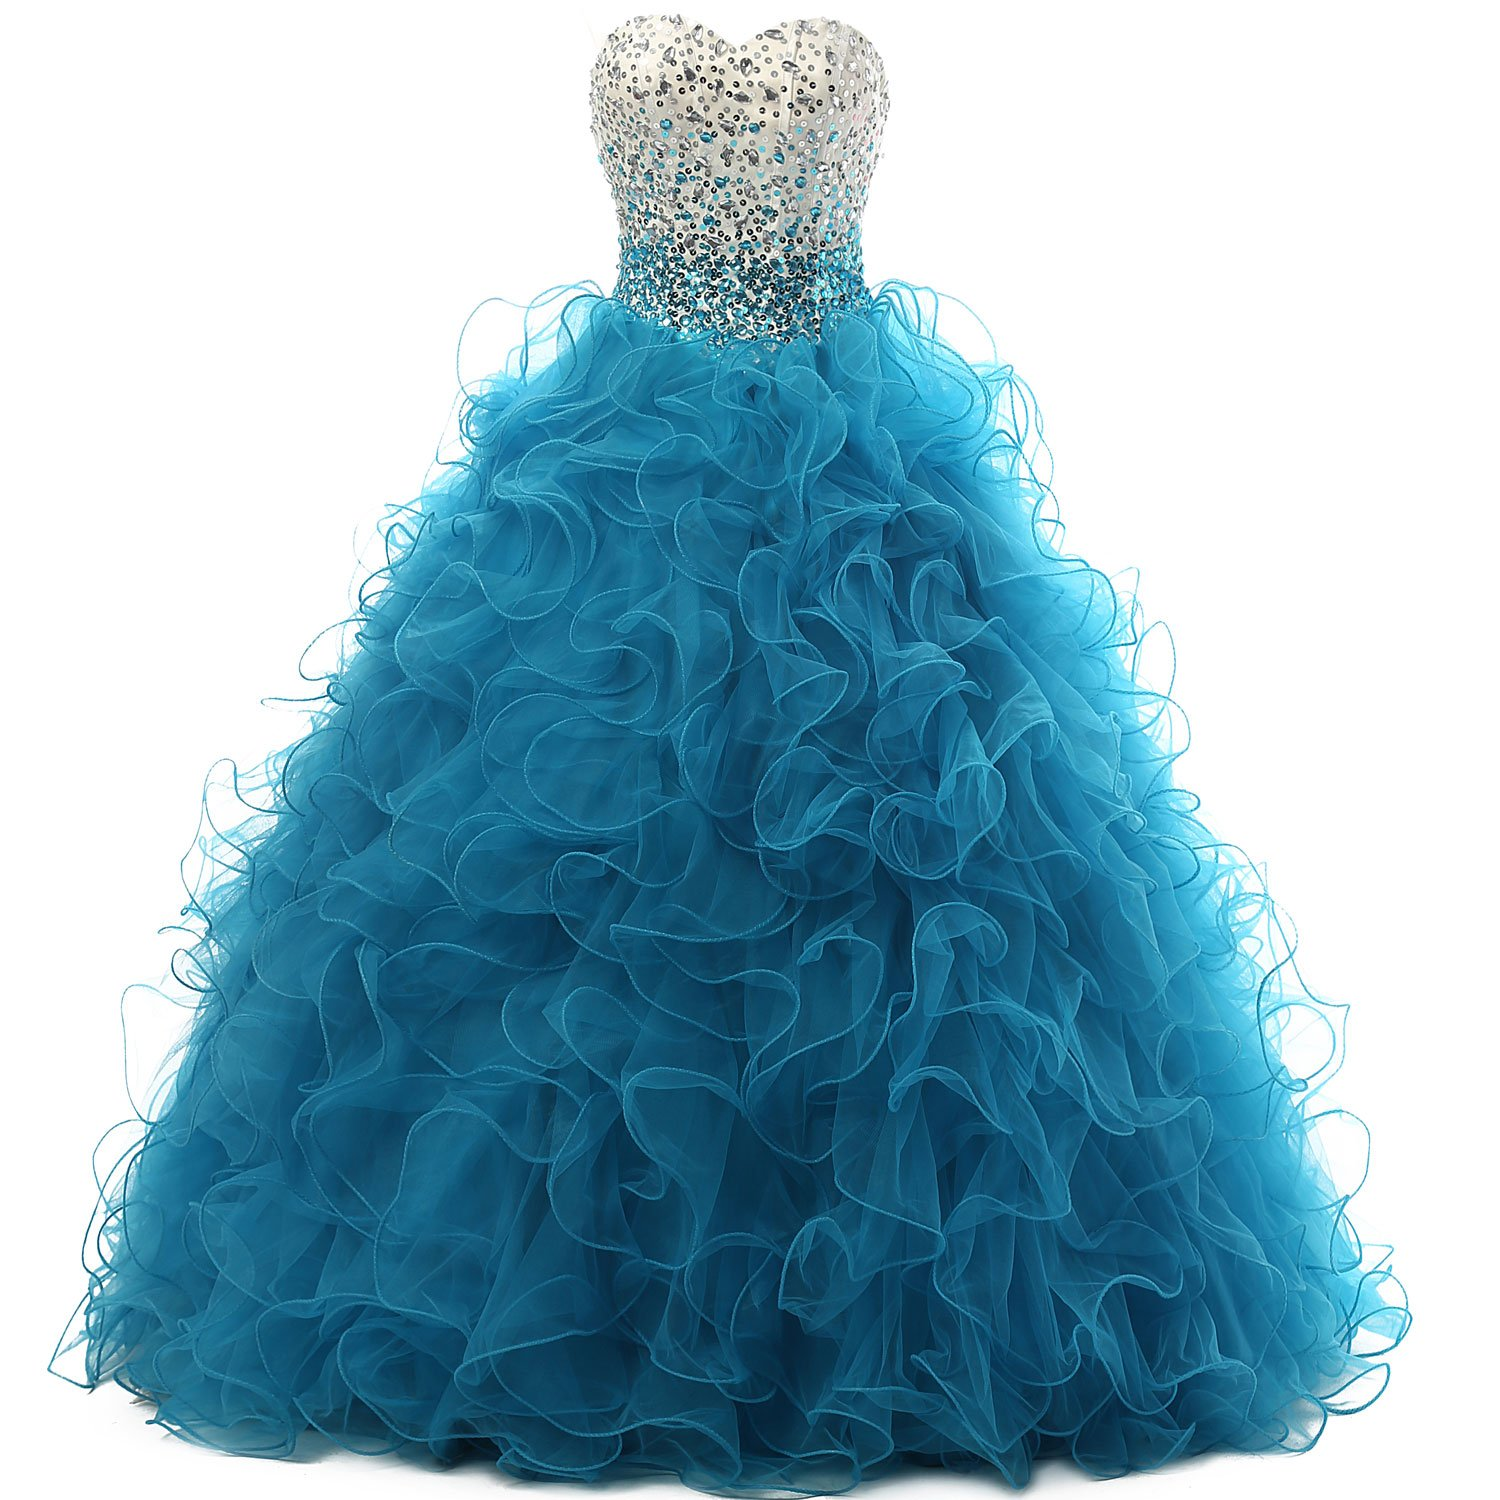 Dressytailor Ballgown Sweetheart Quinceanera Dress Prom Dress with Beading by Artie dress (Image #1)